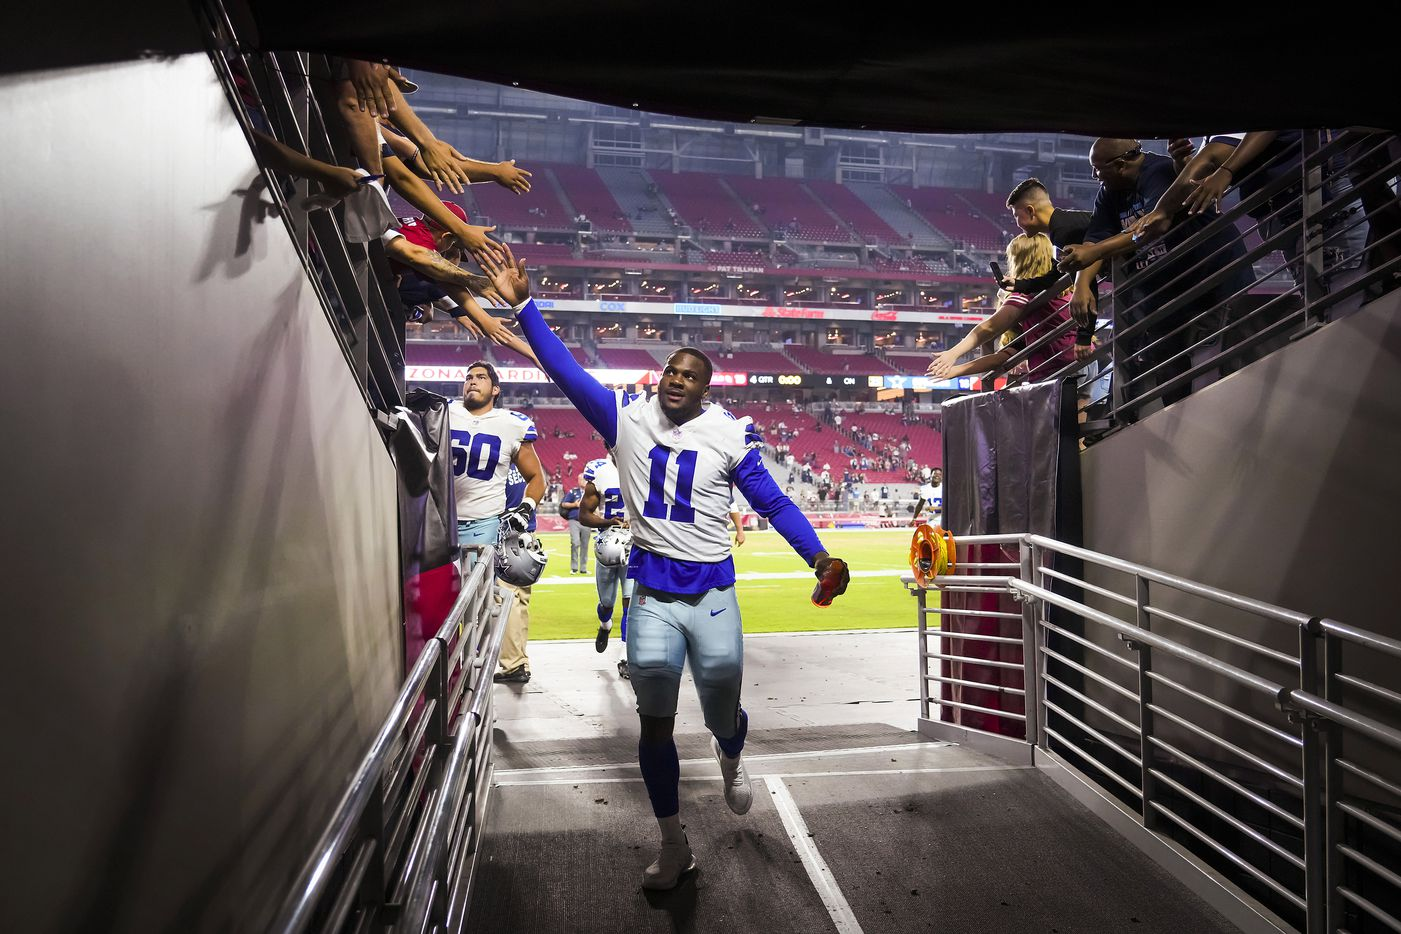 Dallas Cowboys linebacker Micah Parsons (11) high fives fans as he leaves the field after during a preseason NFL football game against the Arizona Cardinals at State Farm Stadium on Saturday, Aug. 14, 2021, in Glendale, Ariz.